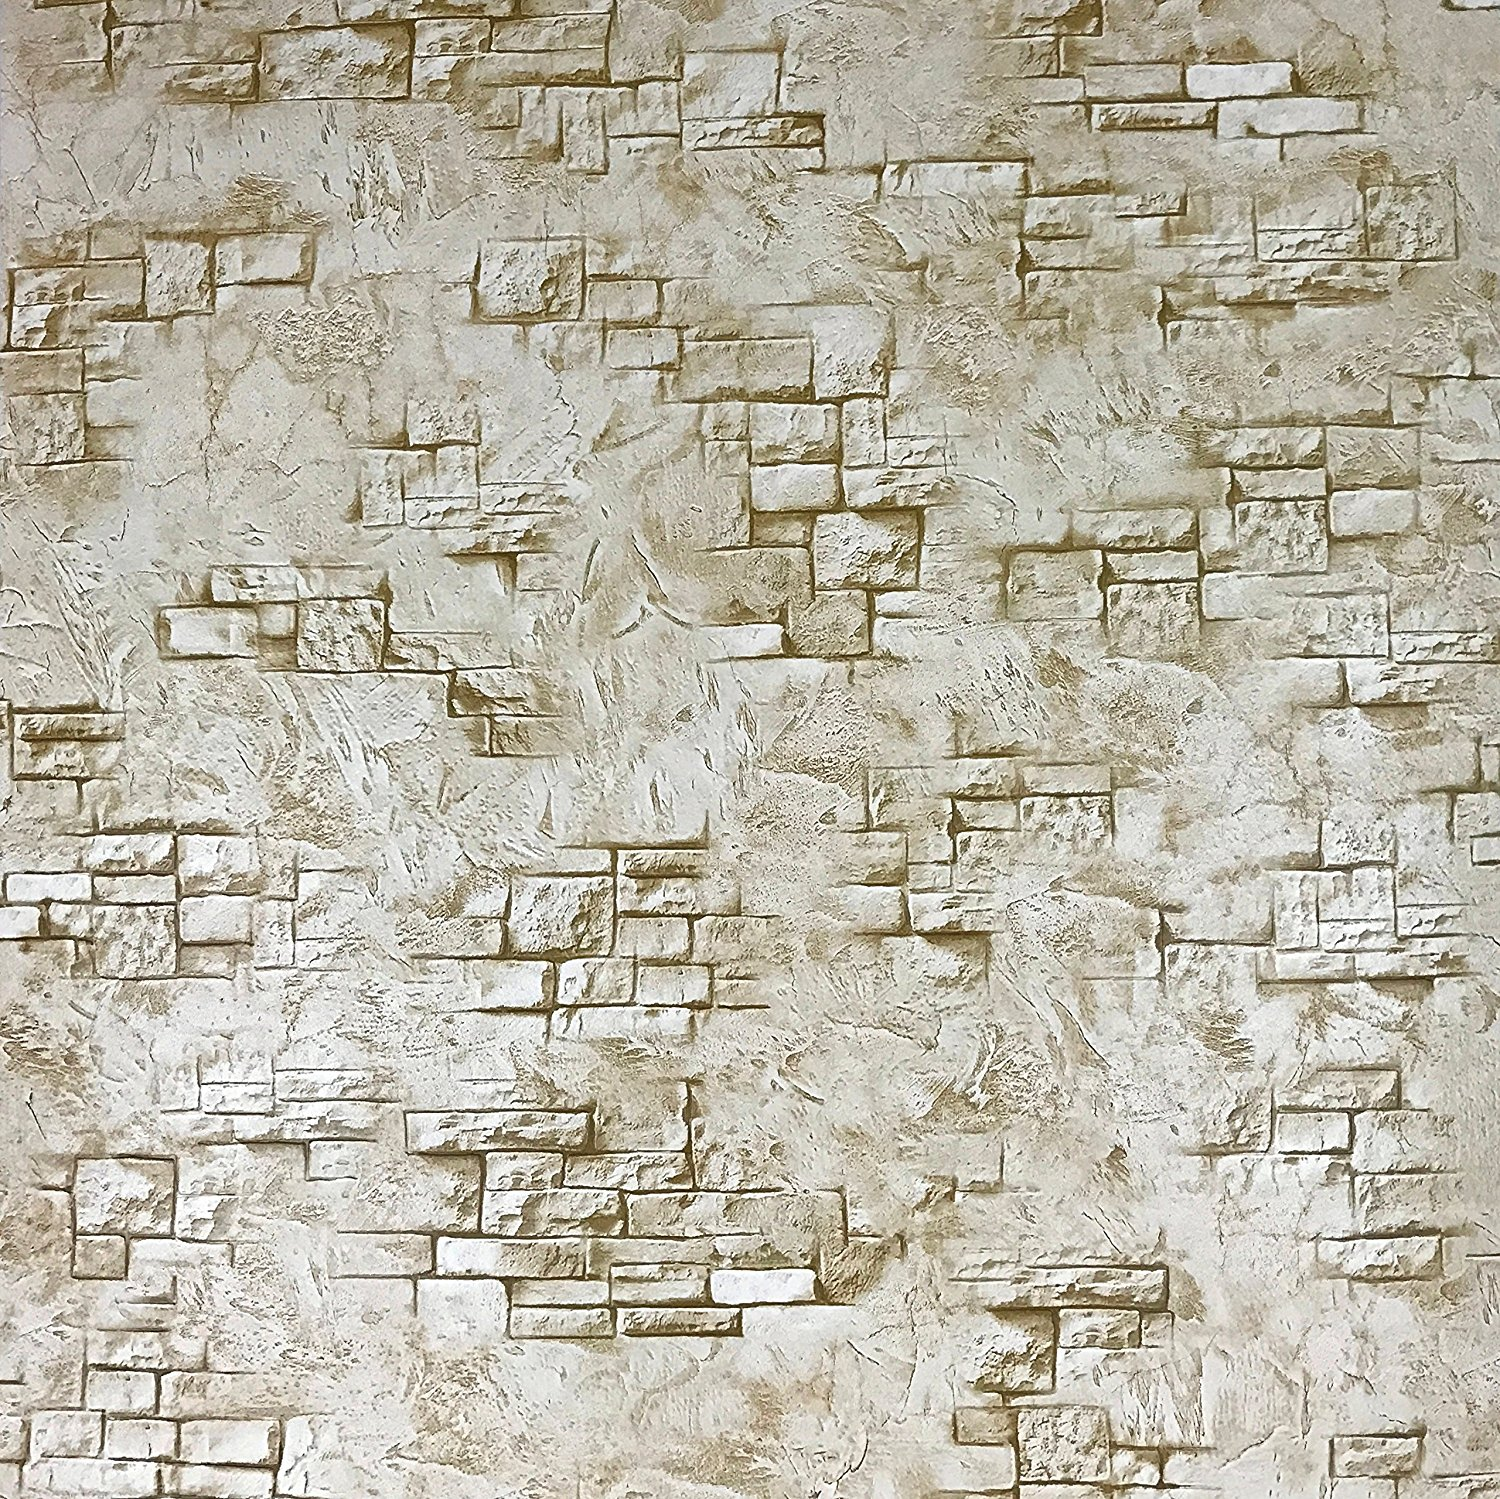 Cheap Faux Brick Wall Covering Find Faux Brick Wall Covering Deals